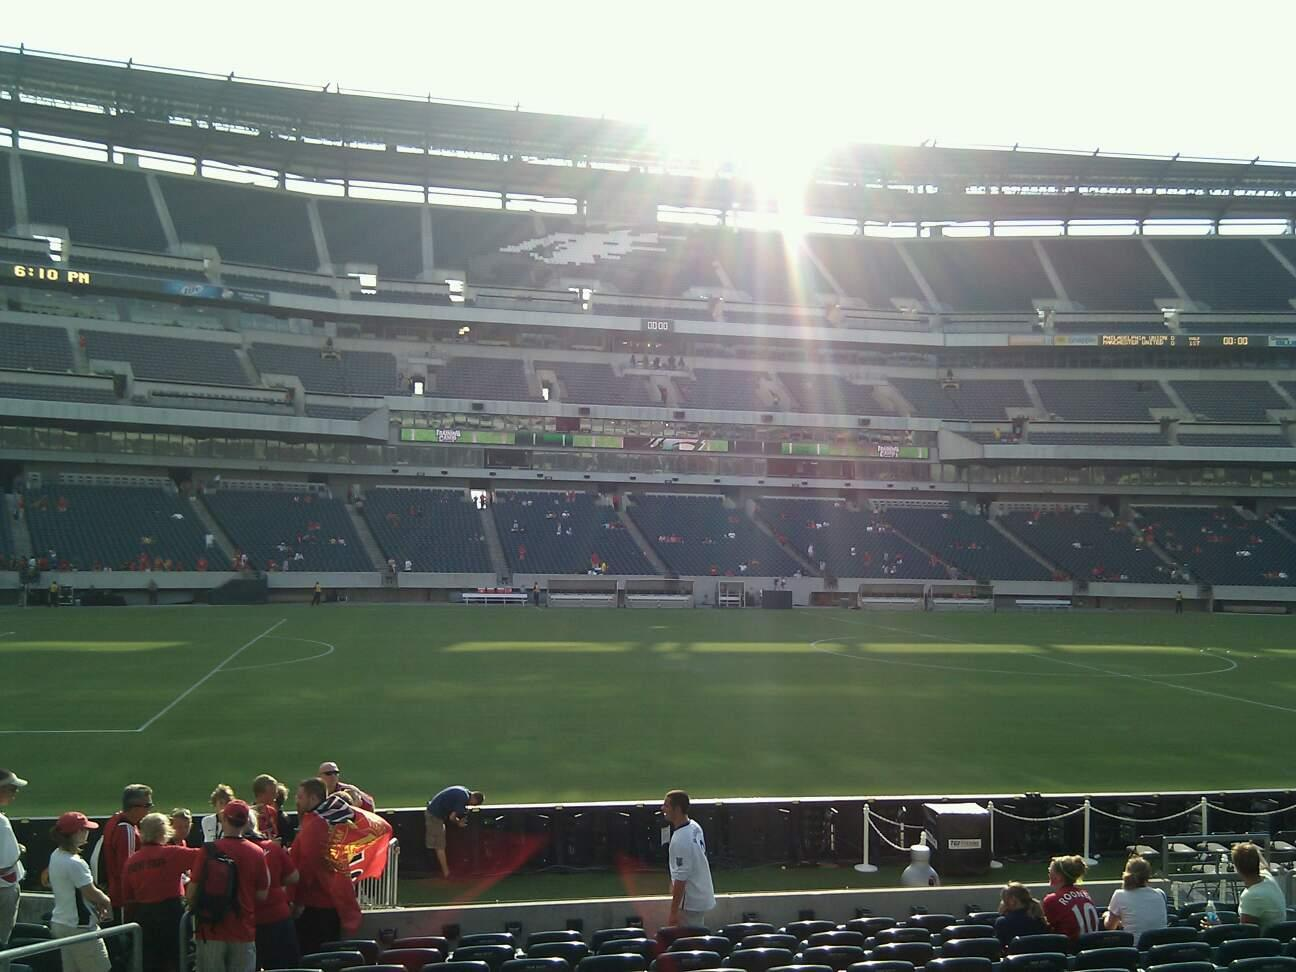 Lincoln Financial Field Section 118 Row 13 Seat 14